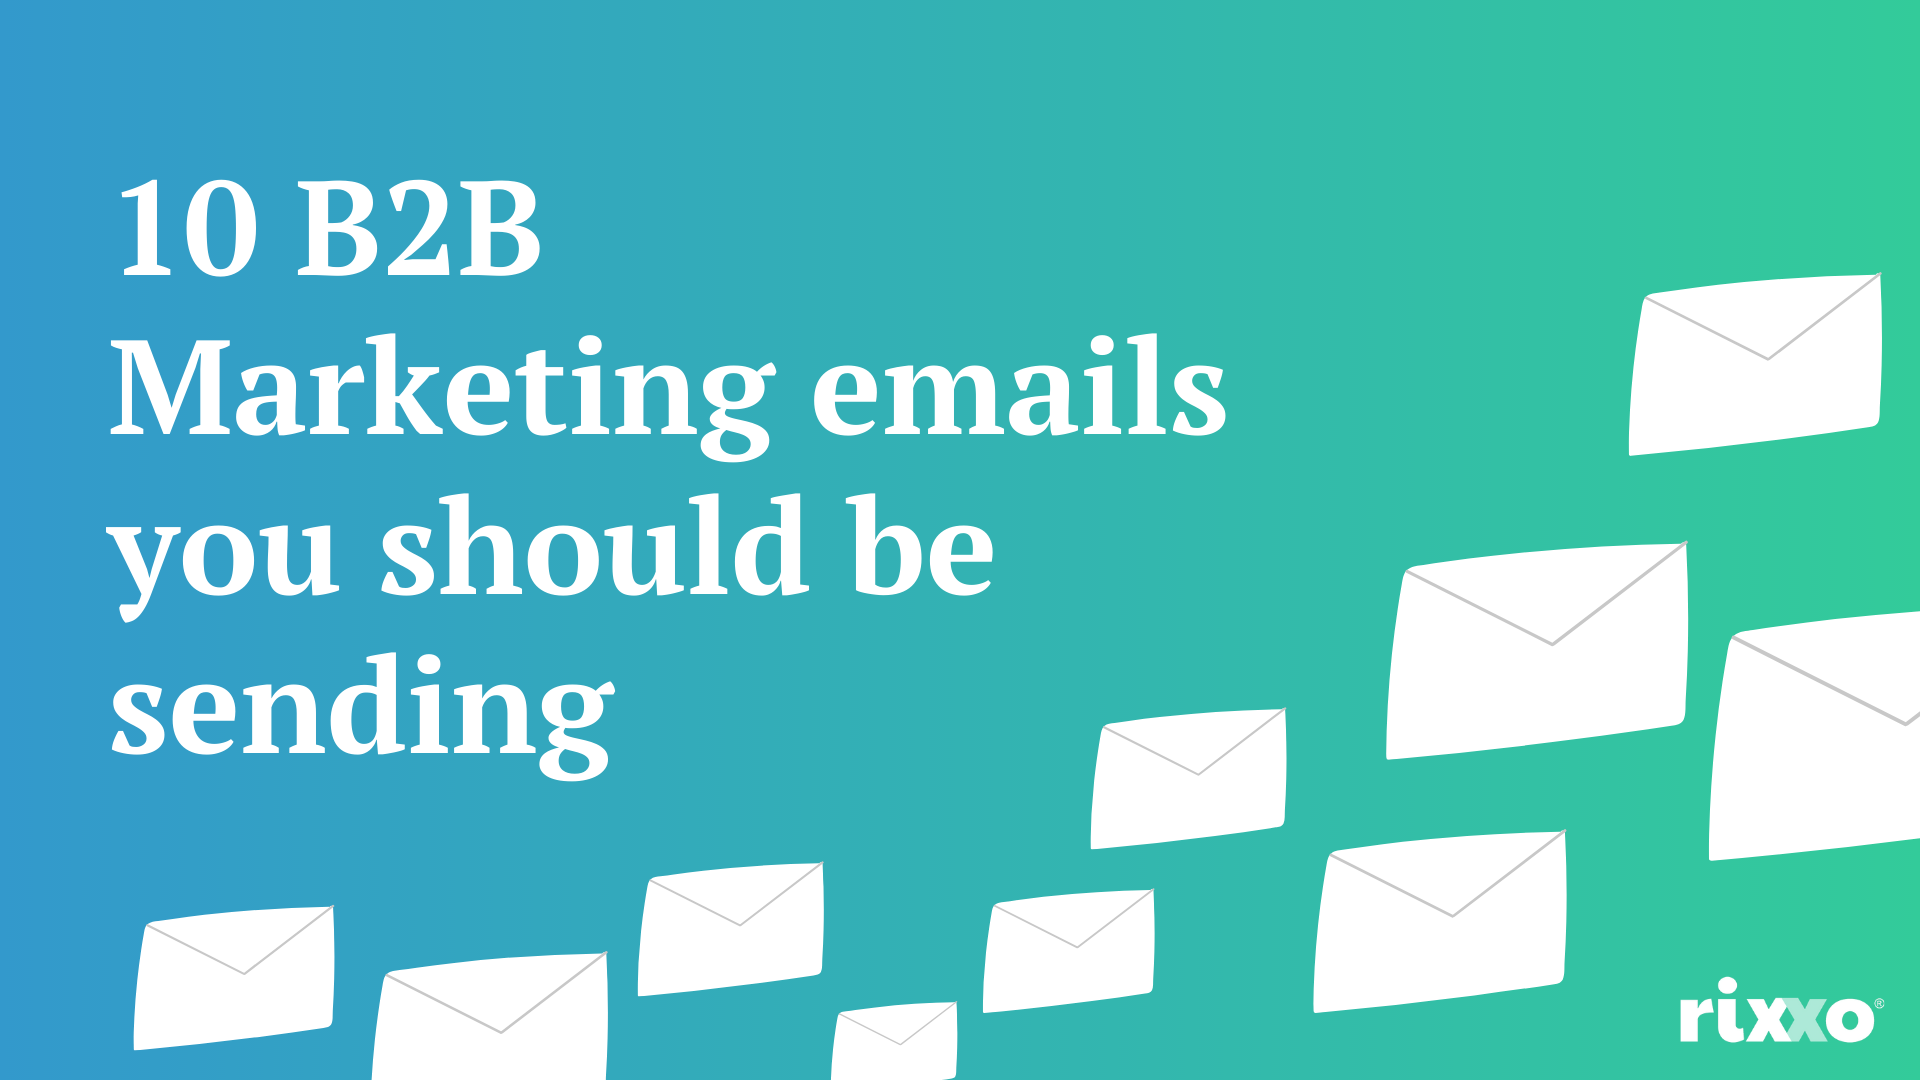 Free marketing resources: 10 B2B Marketing emails you should be sending